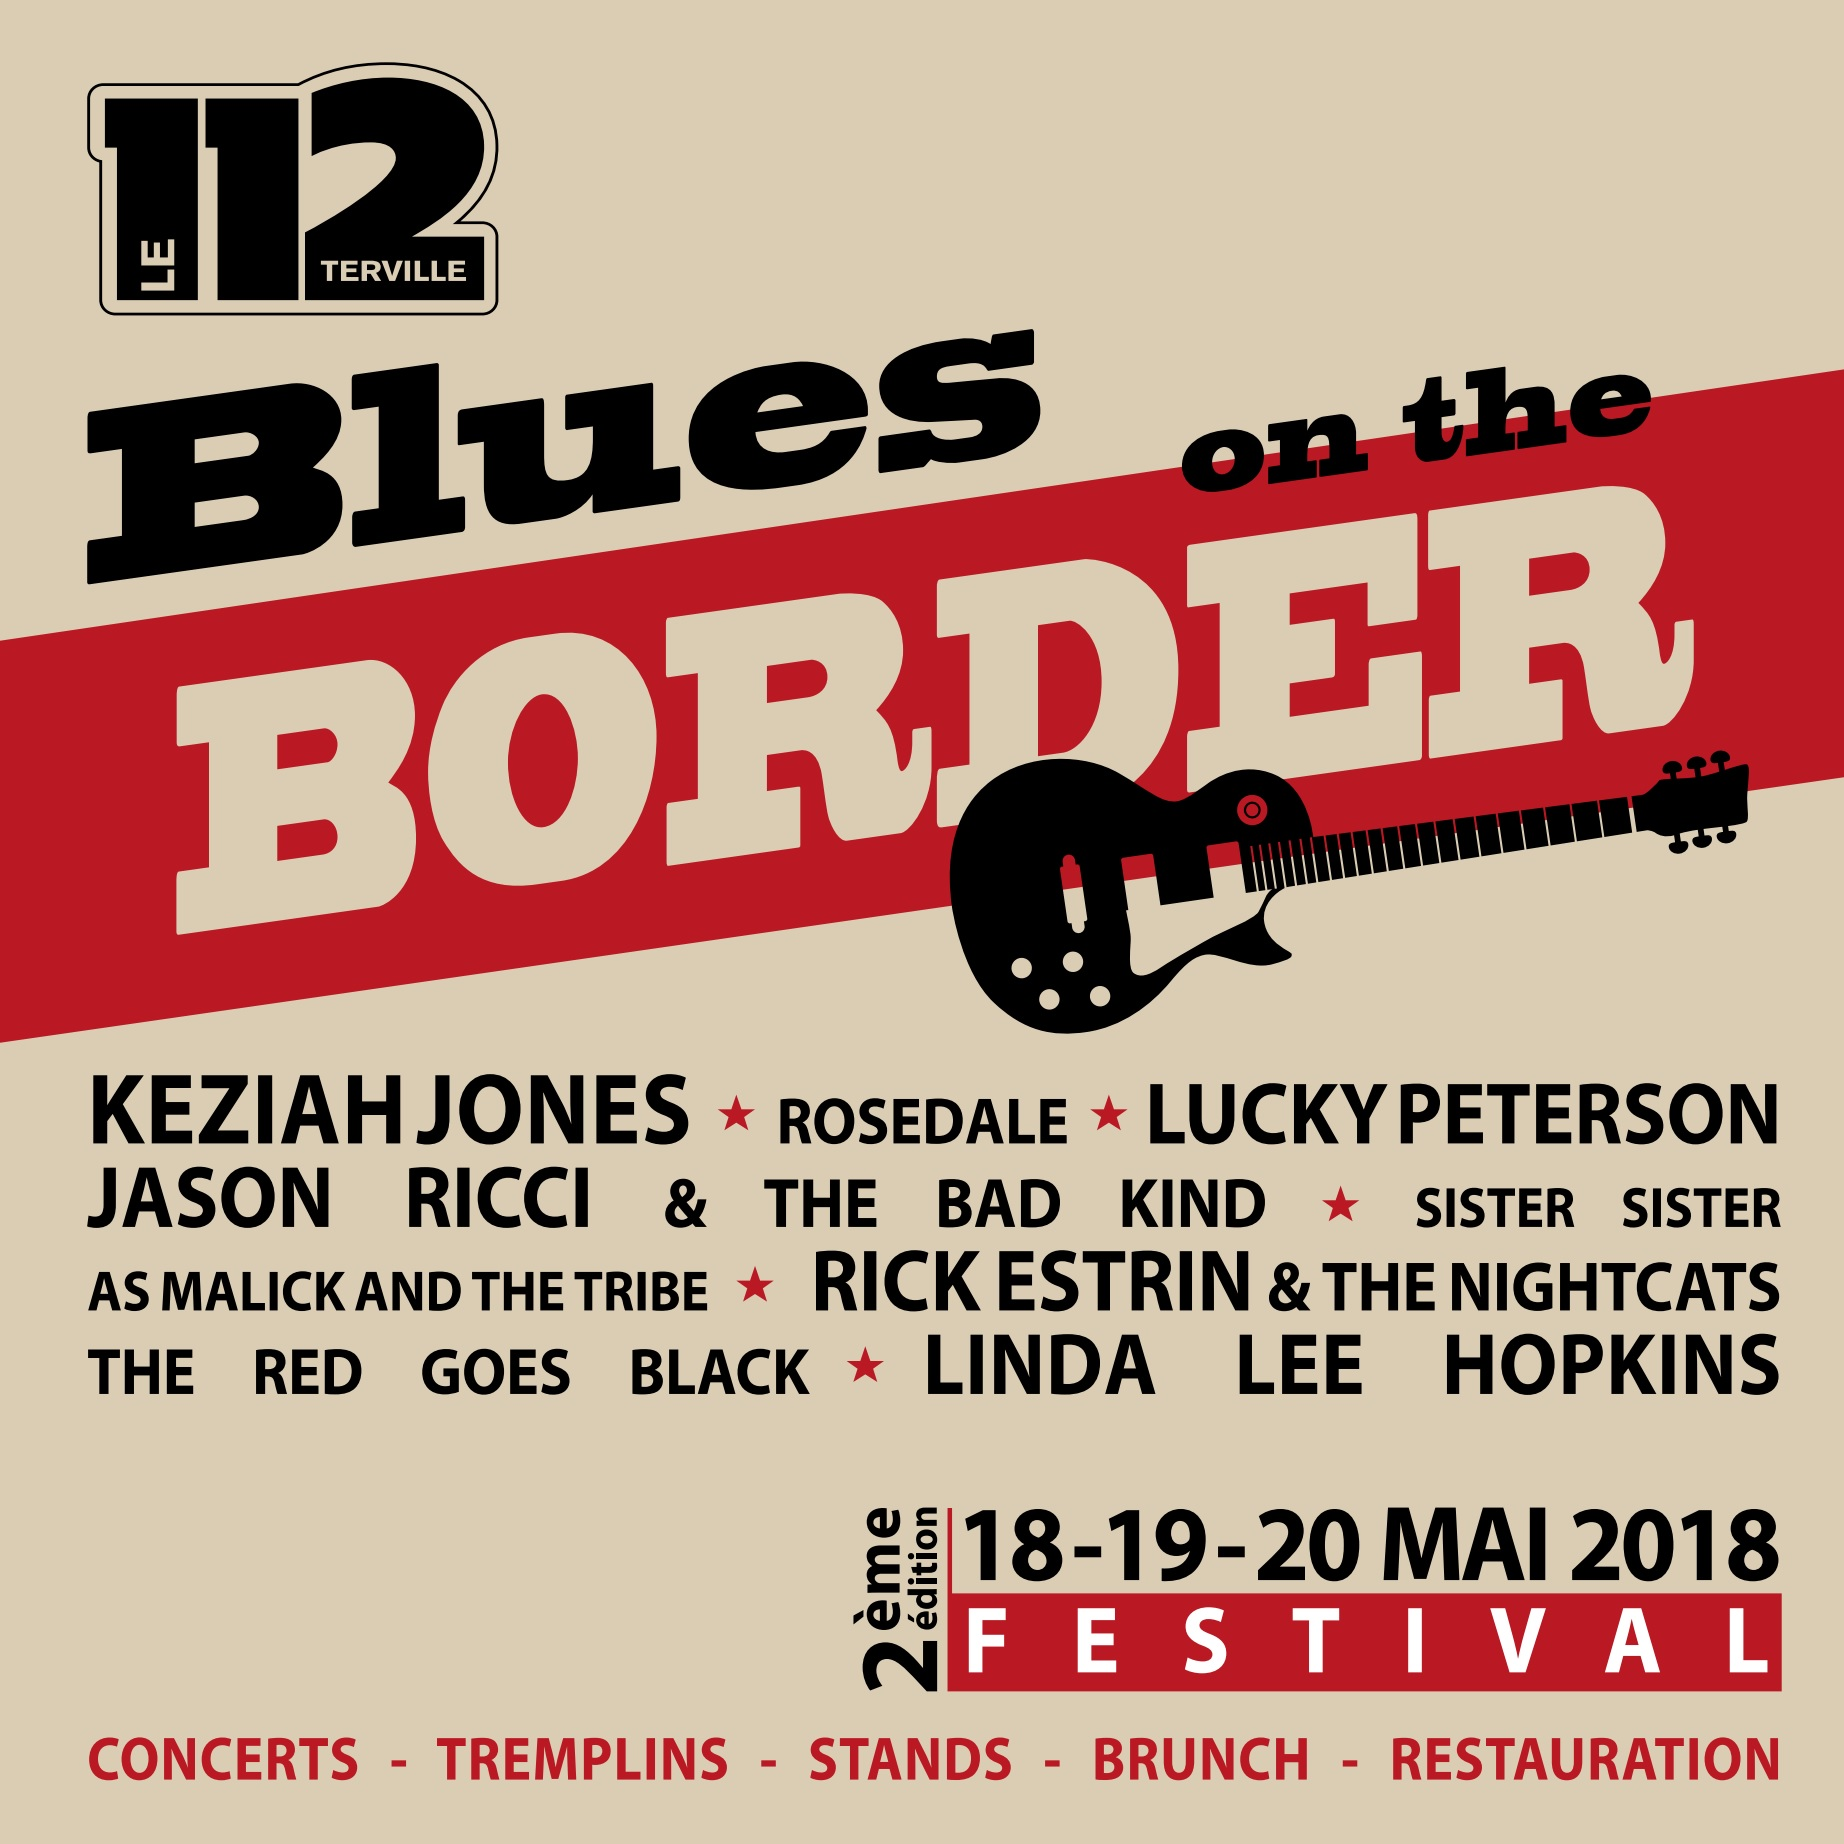 Festival BOB - Rosedale + The Red Goes Black + LUCKY PETERSON